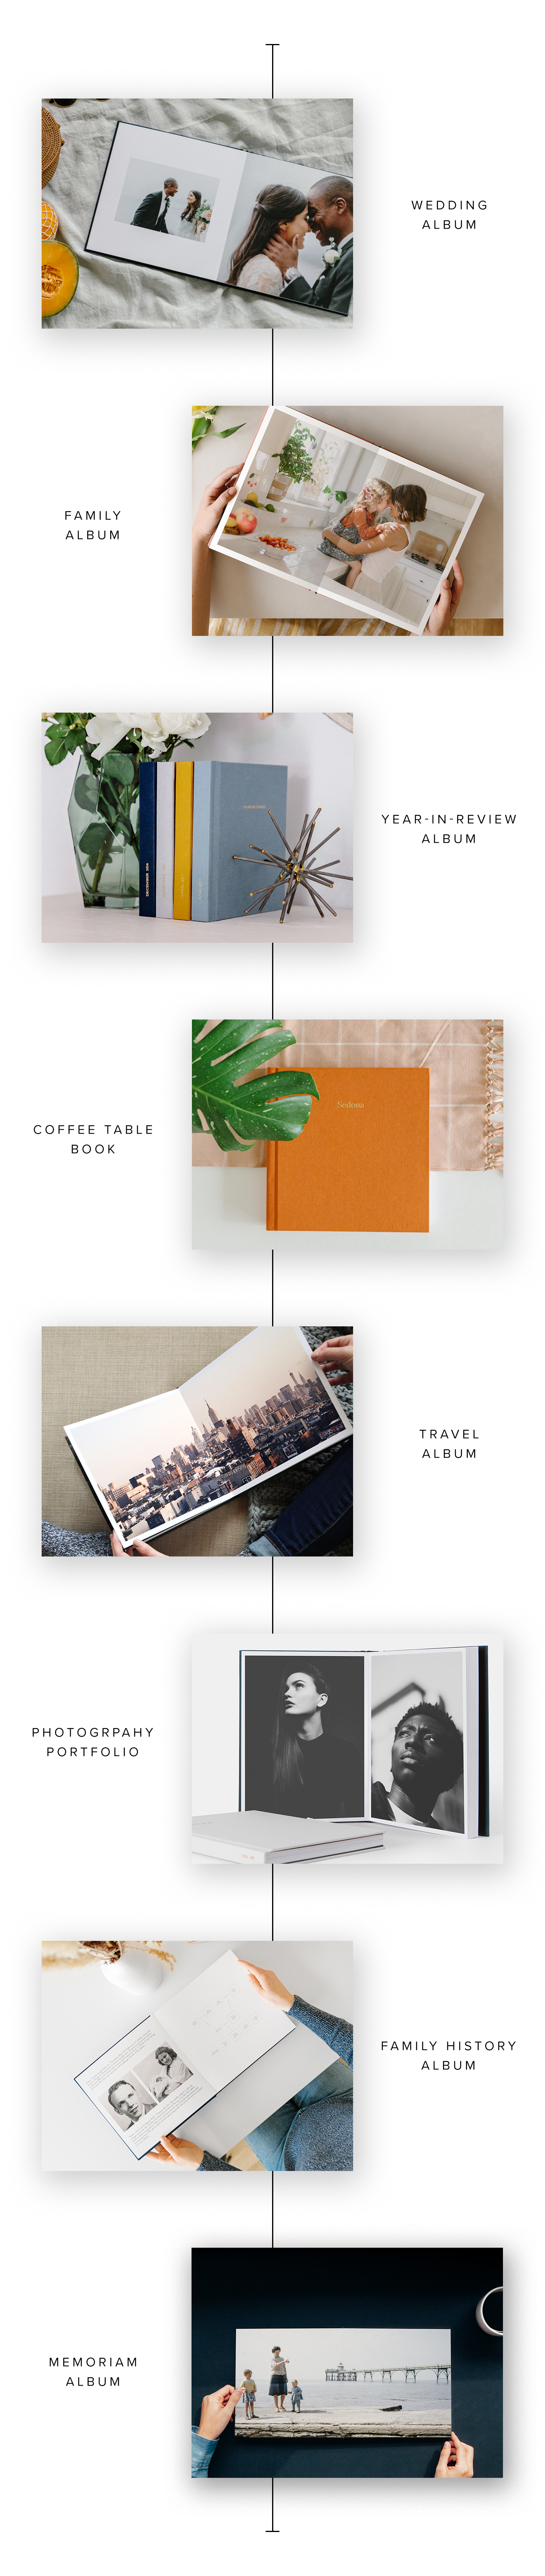 8 Layflat Photo Albums being used for different purposes ranging from travel to wedding photos